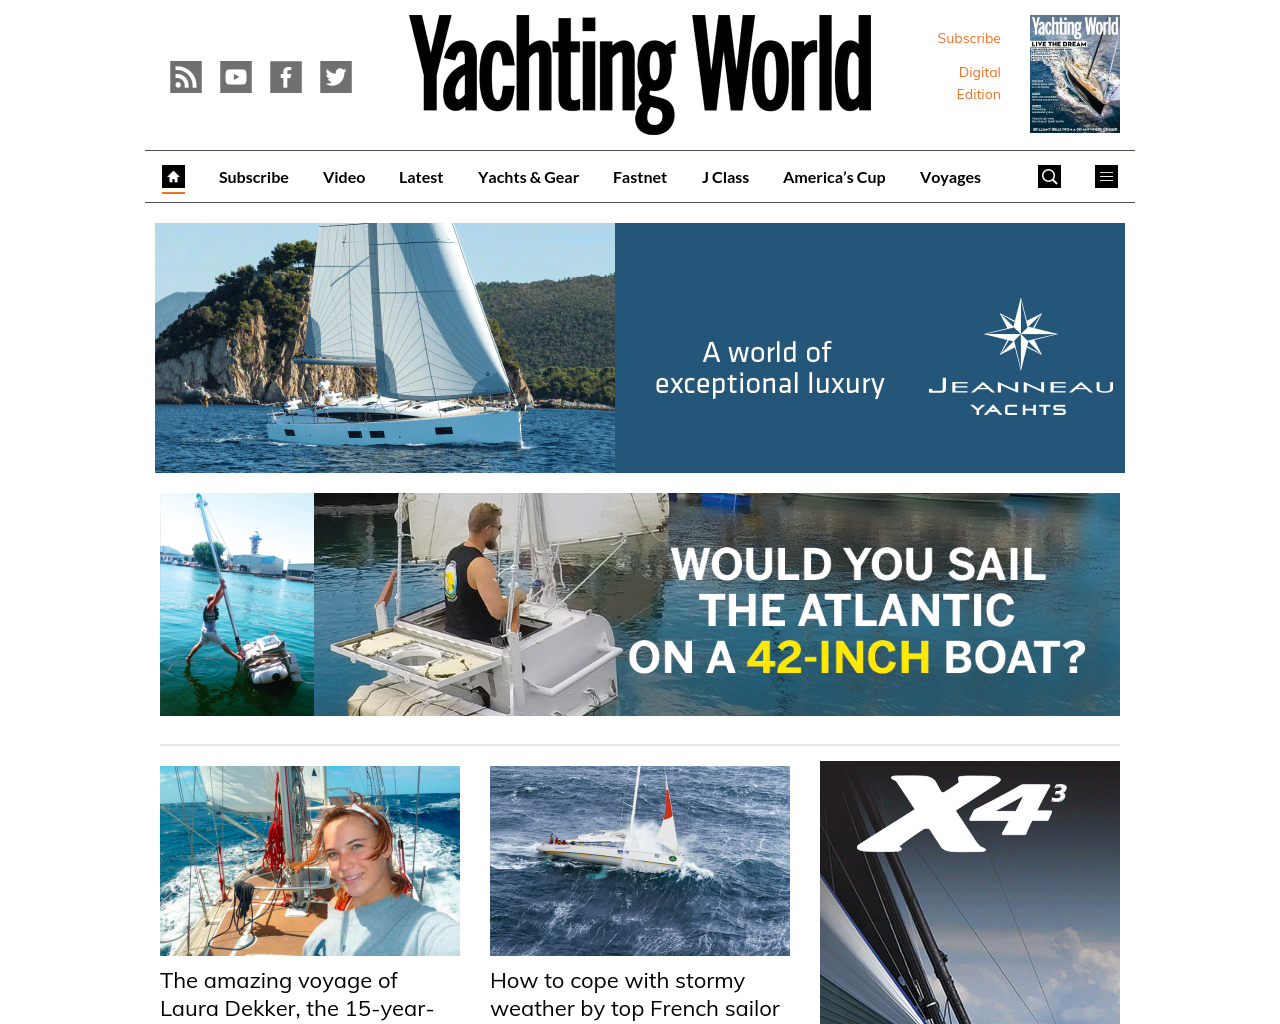 Yachting-World-Advertising-Reviews-Pricing